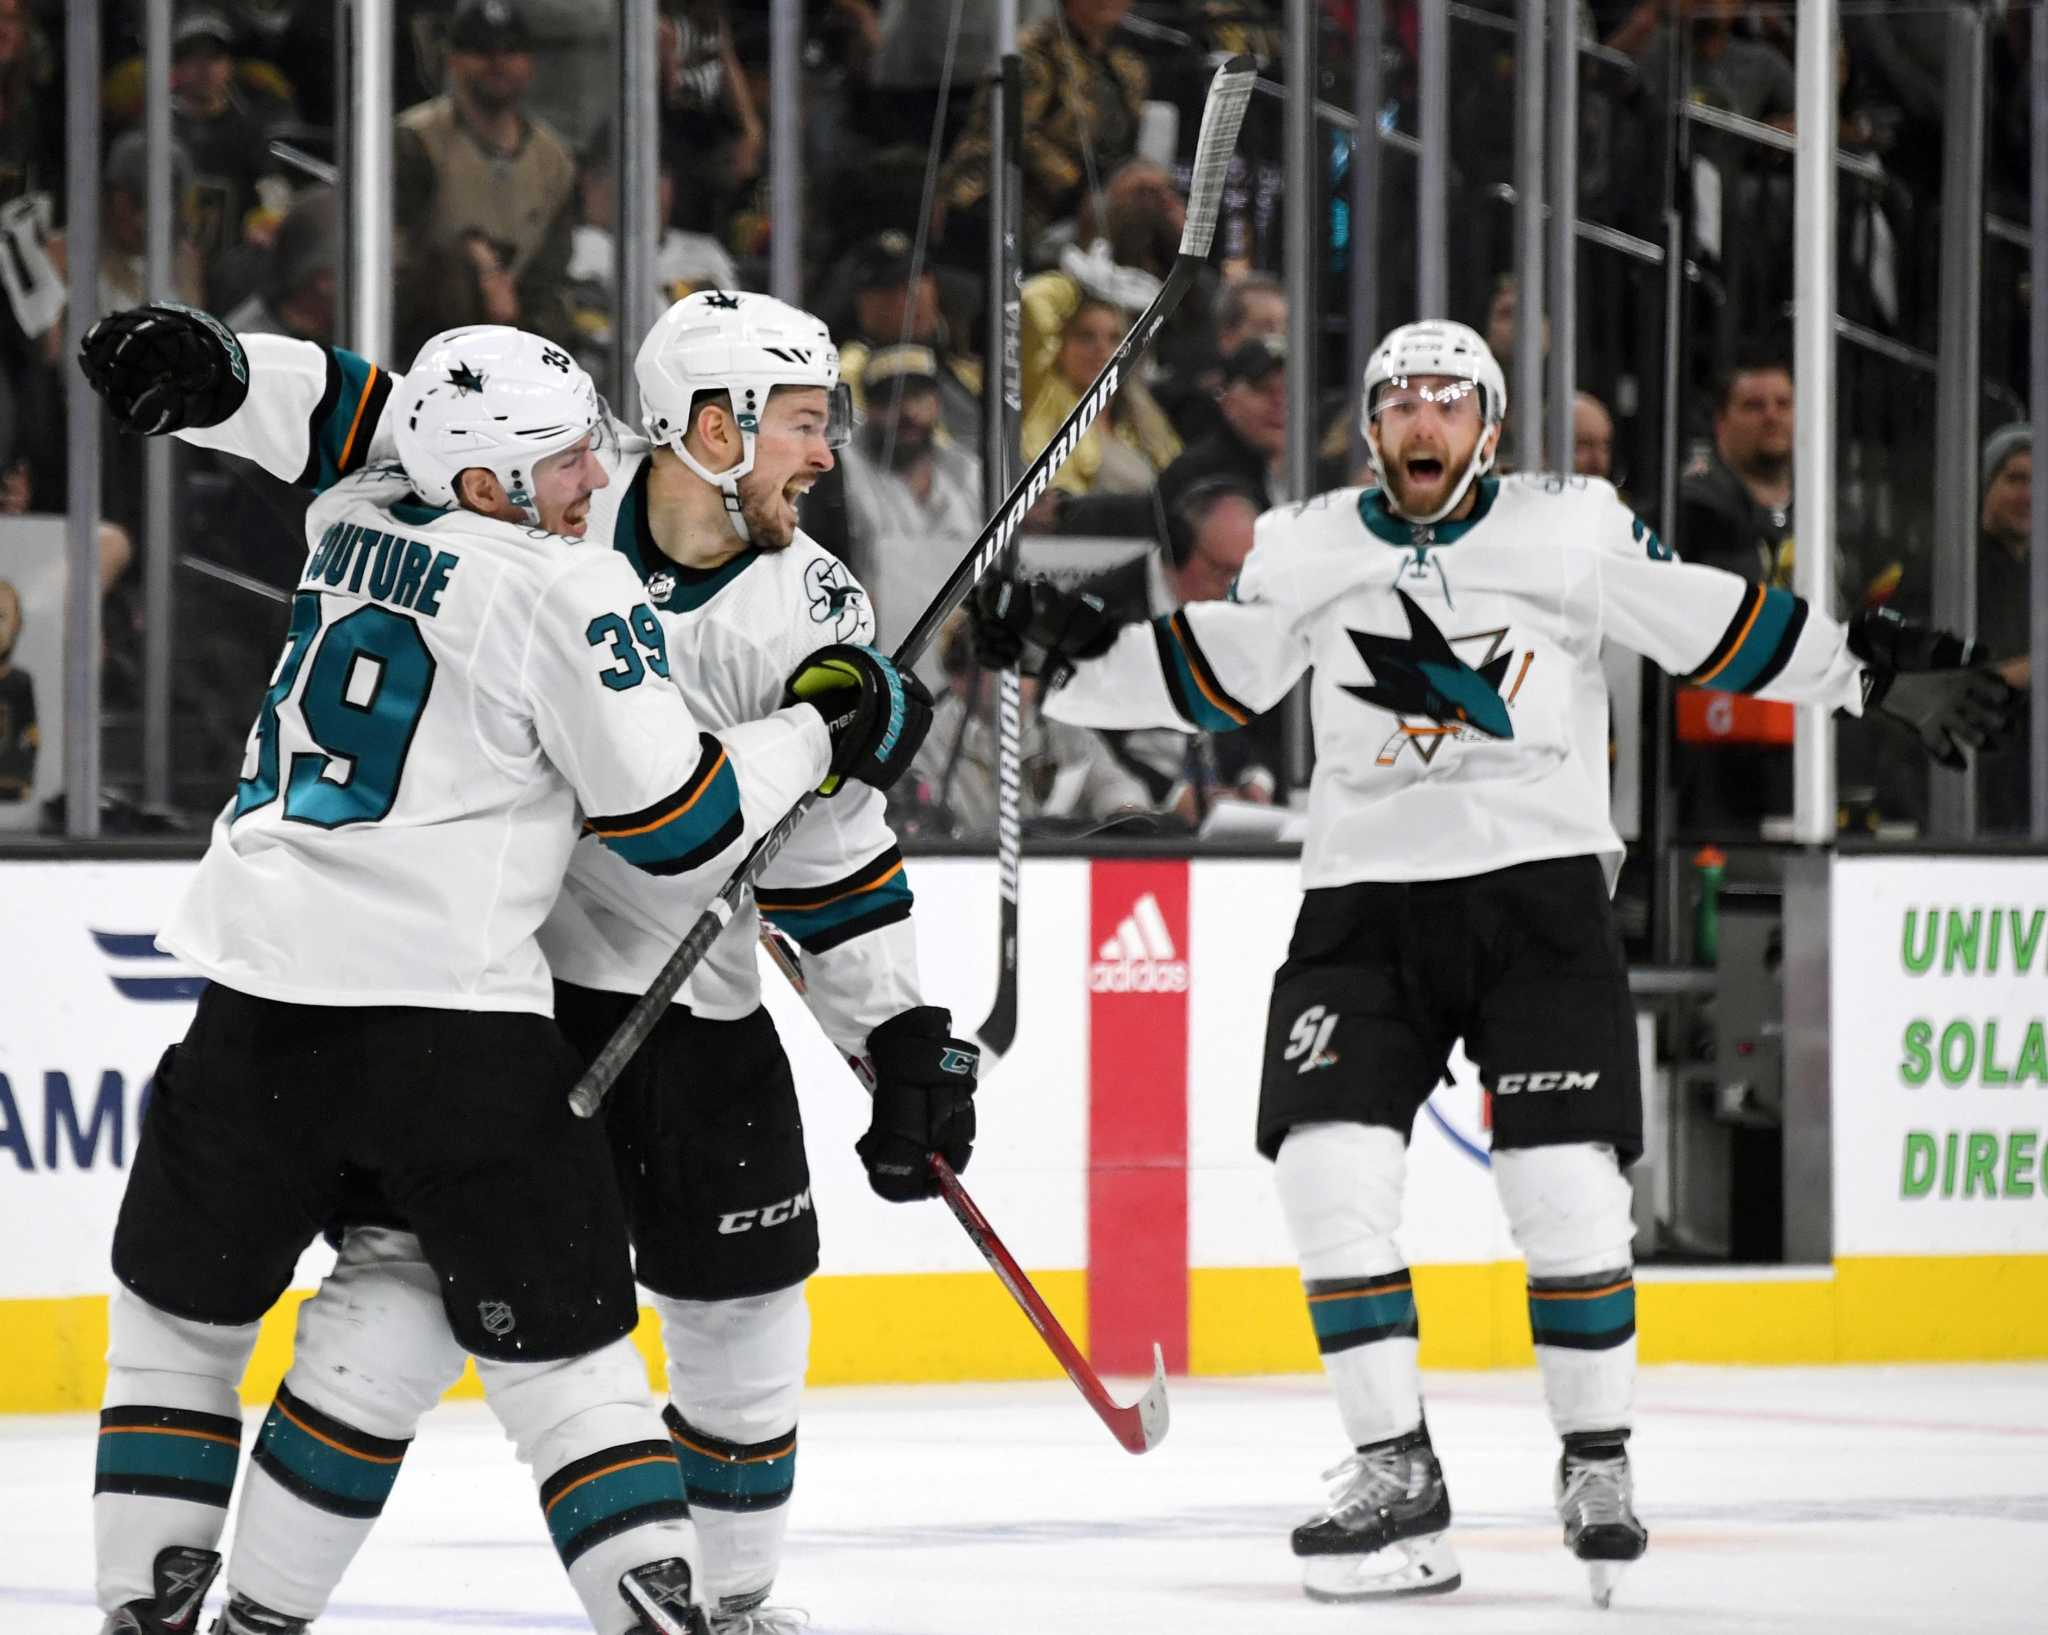 09f7f2bc9ea Tomas Hertl's goal gives Sharks win, sends series to Game 7 - SFGate